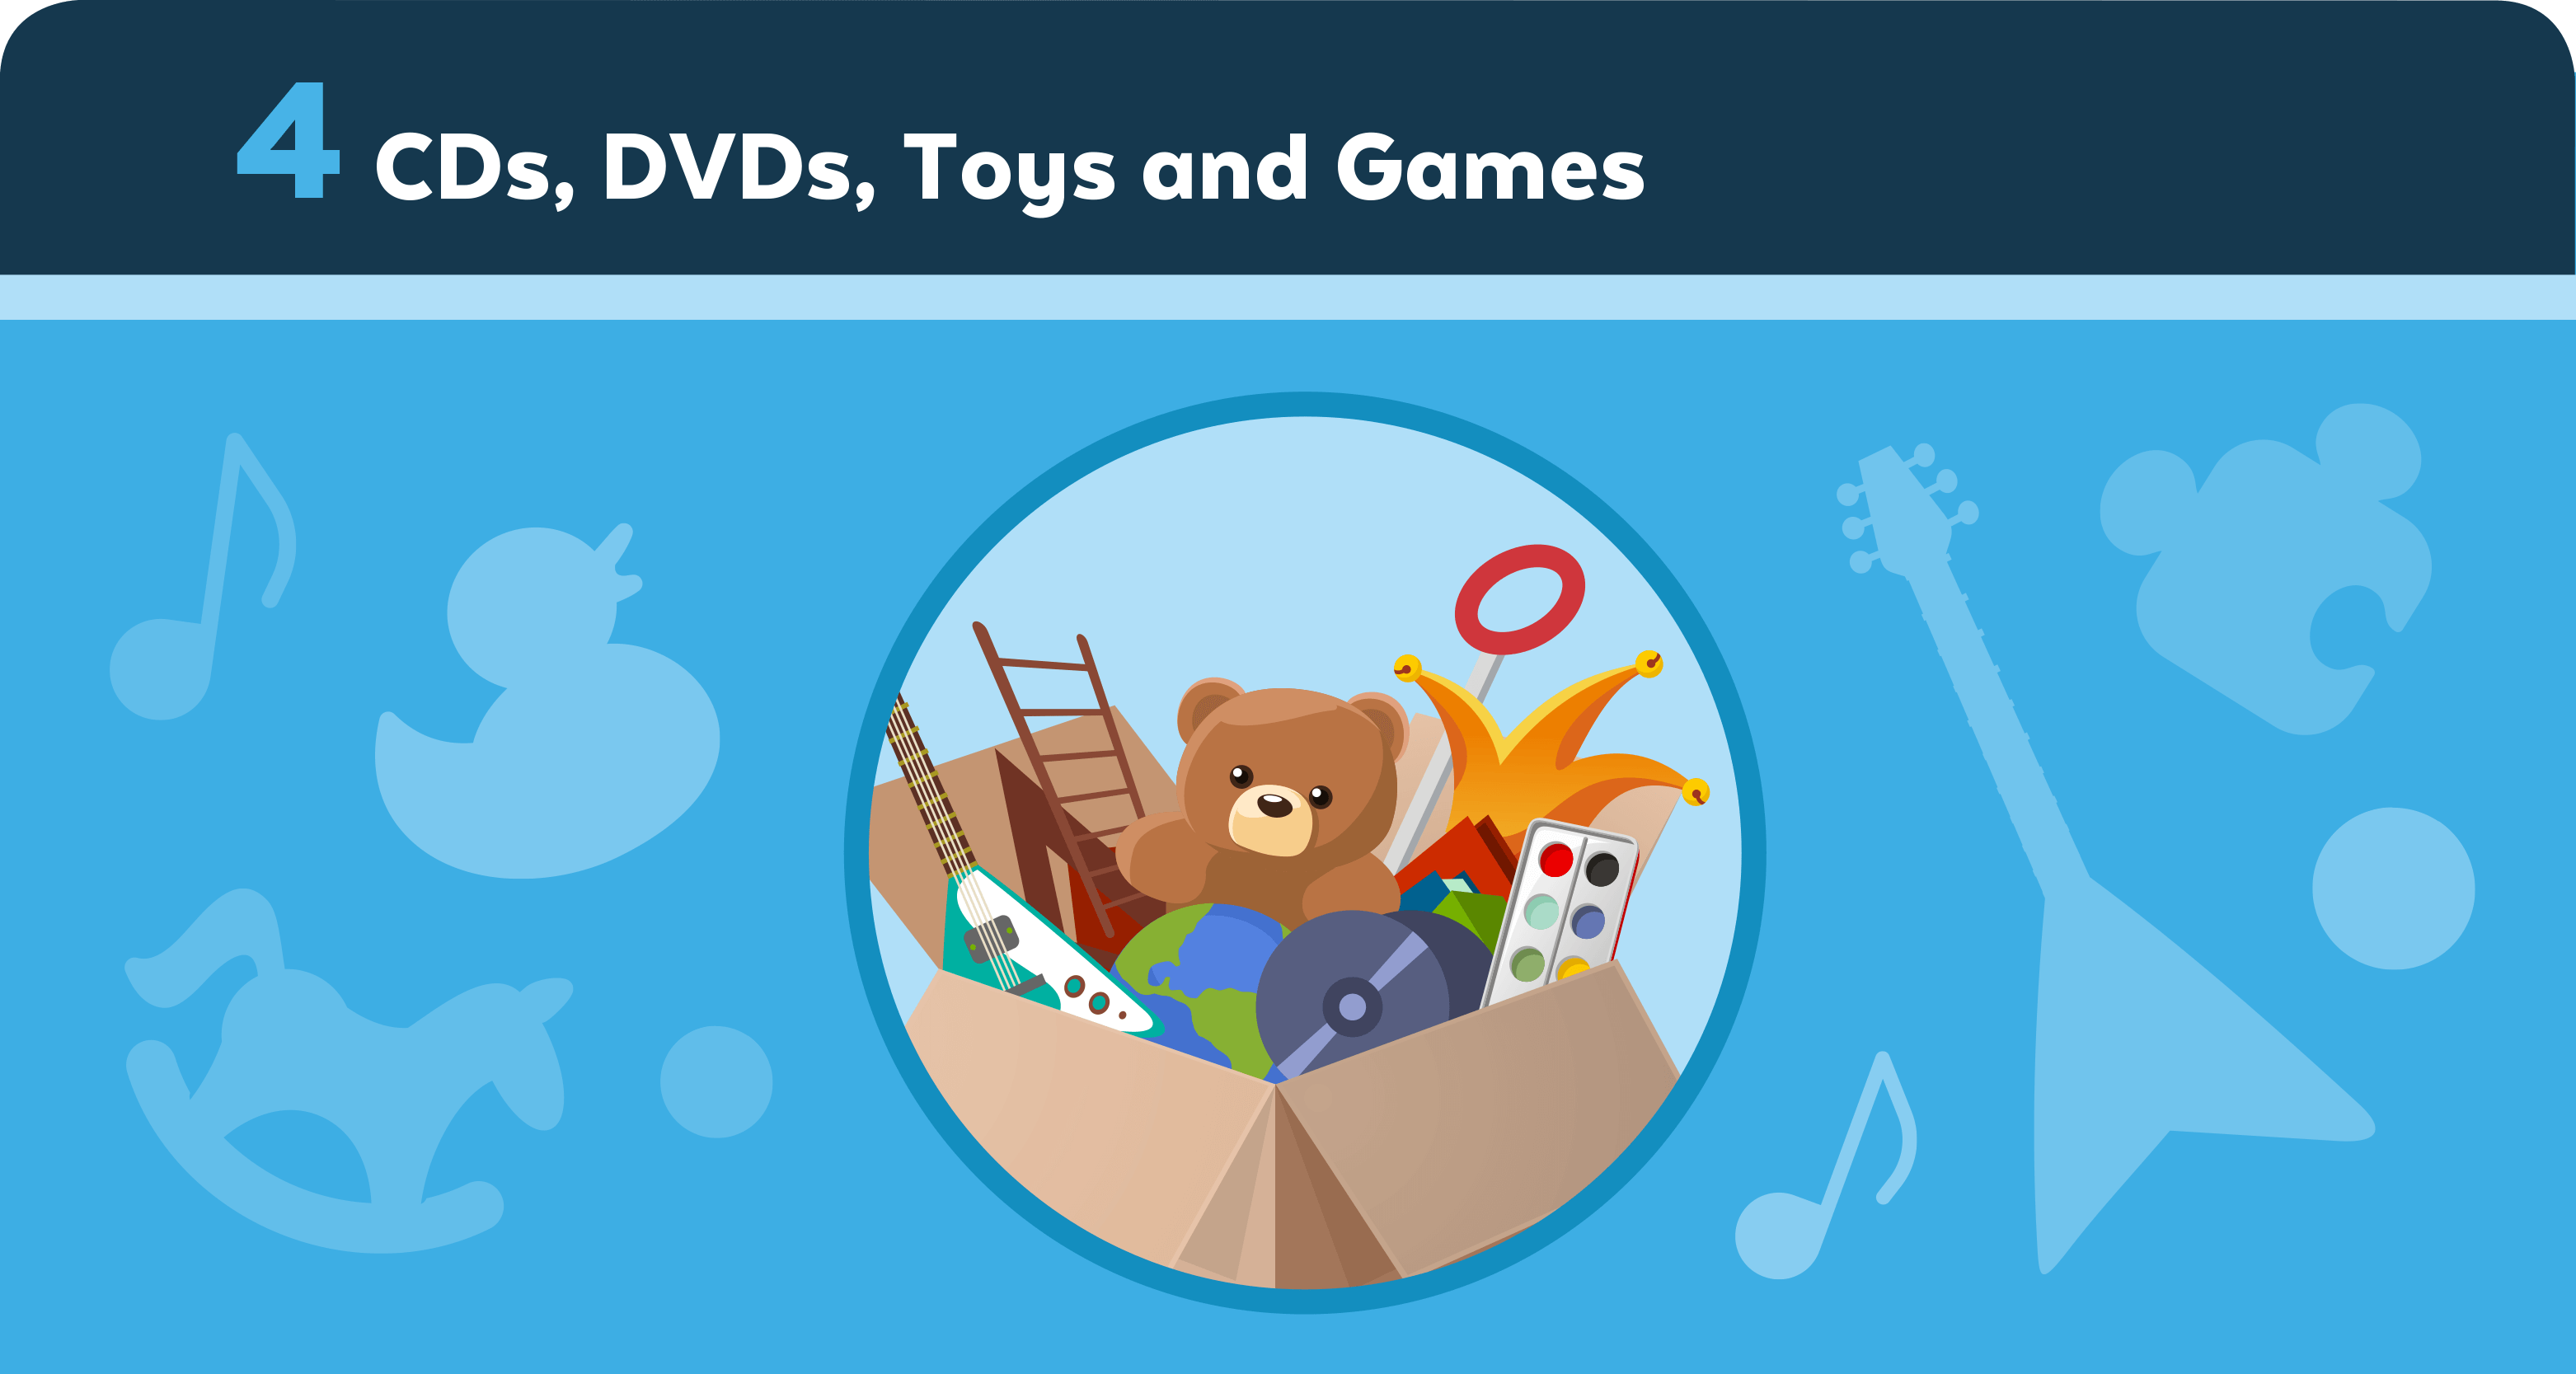 CDs, DVDs, Toys and Games